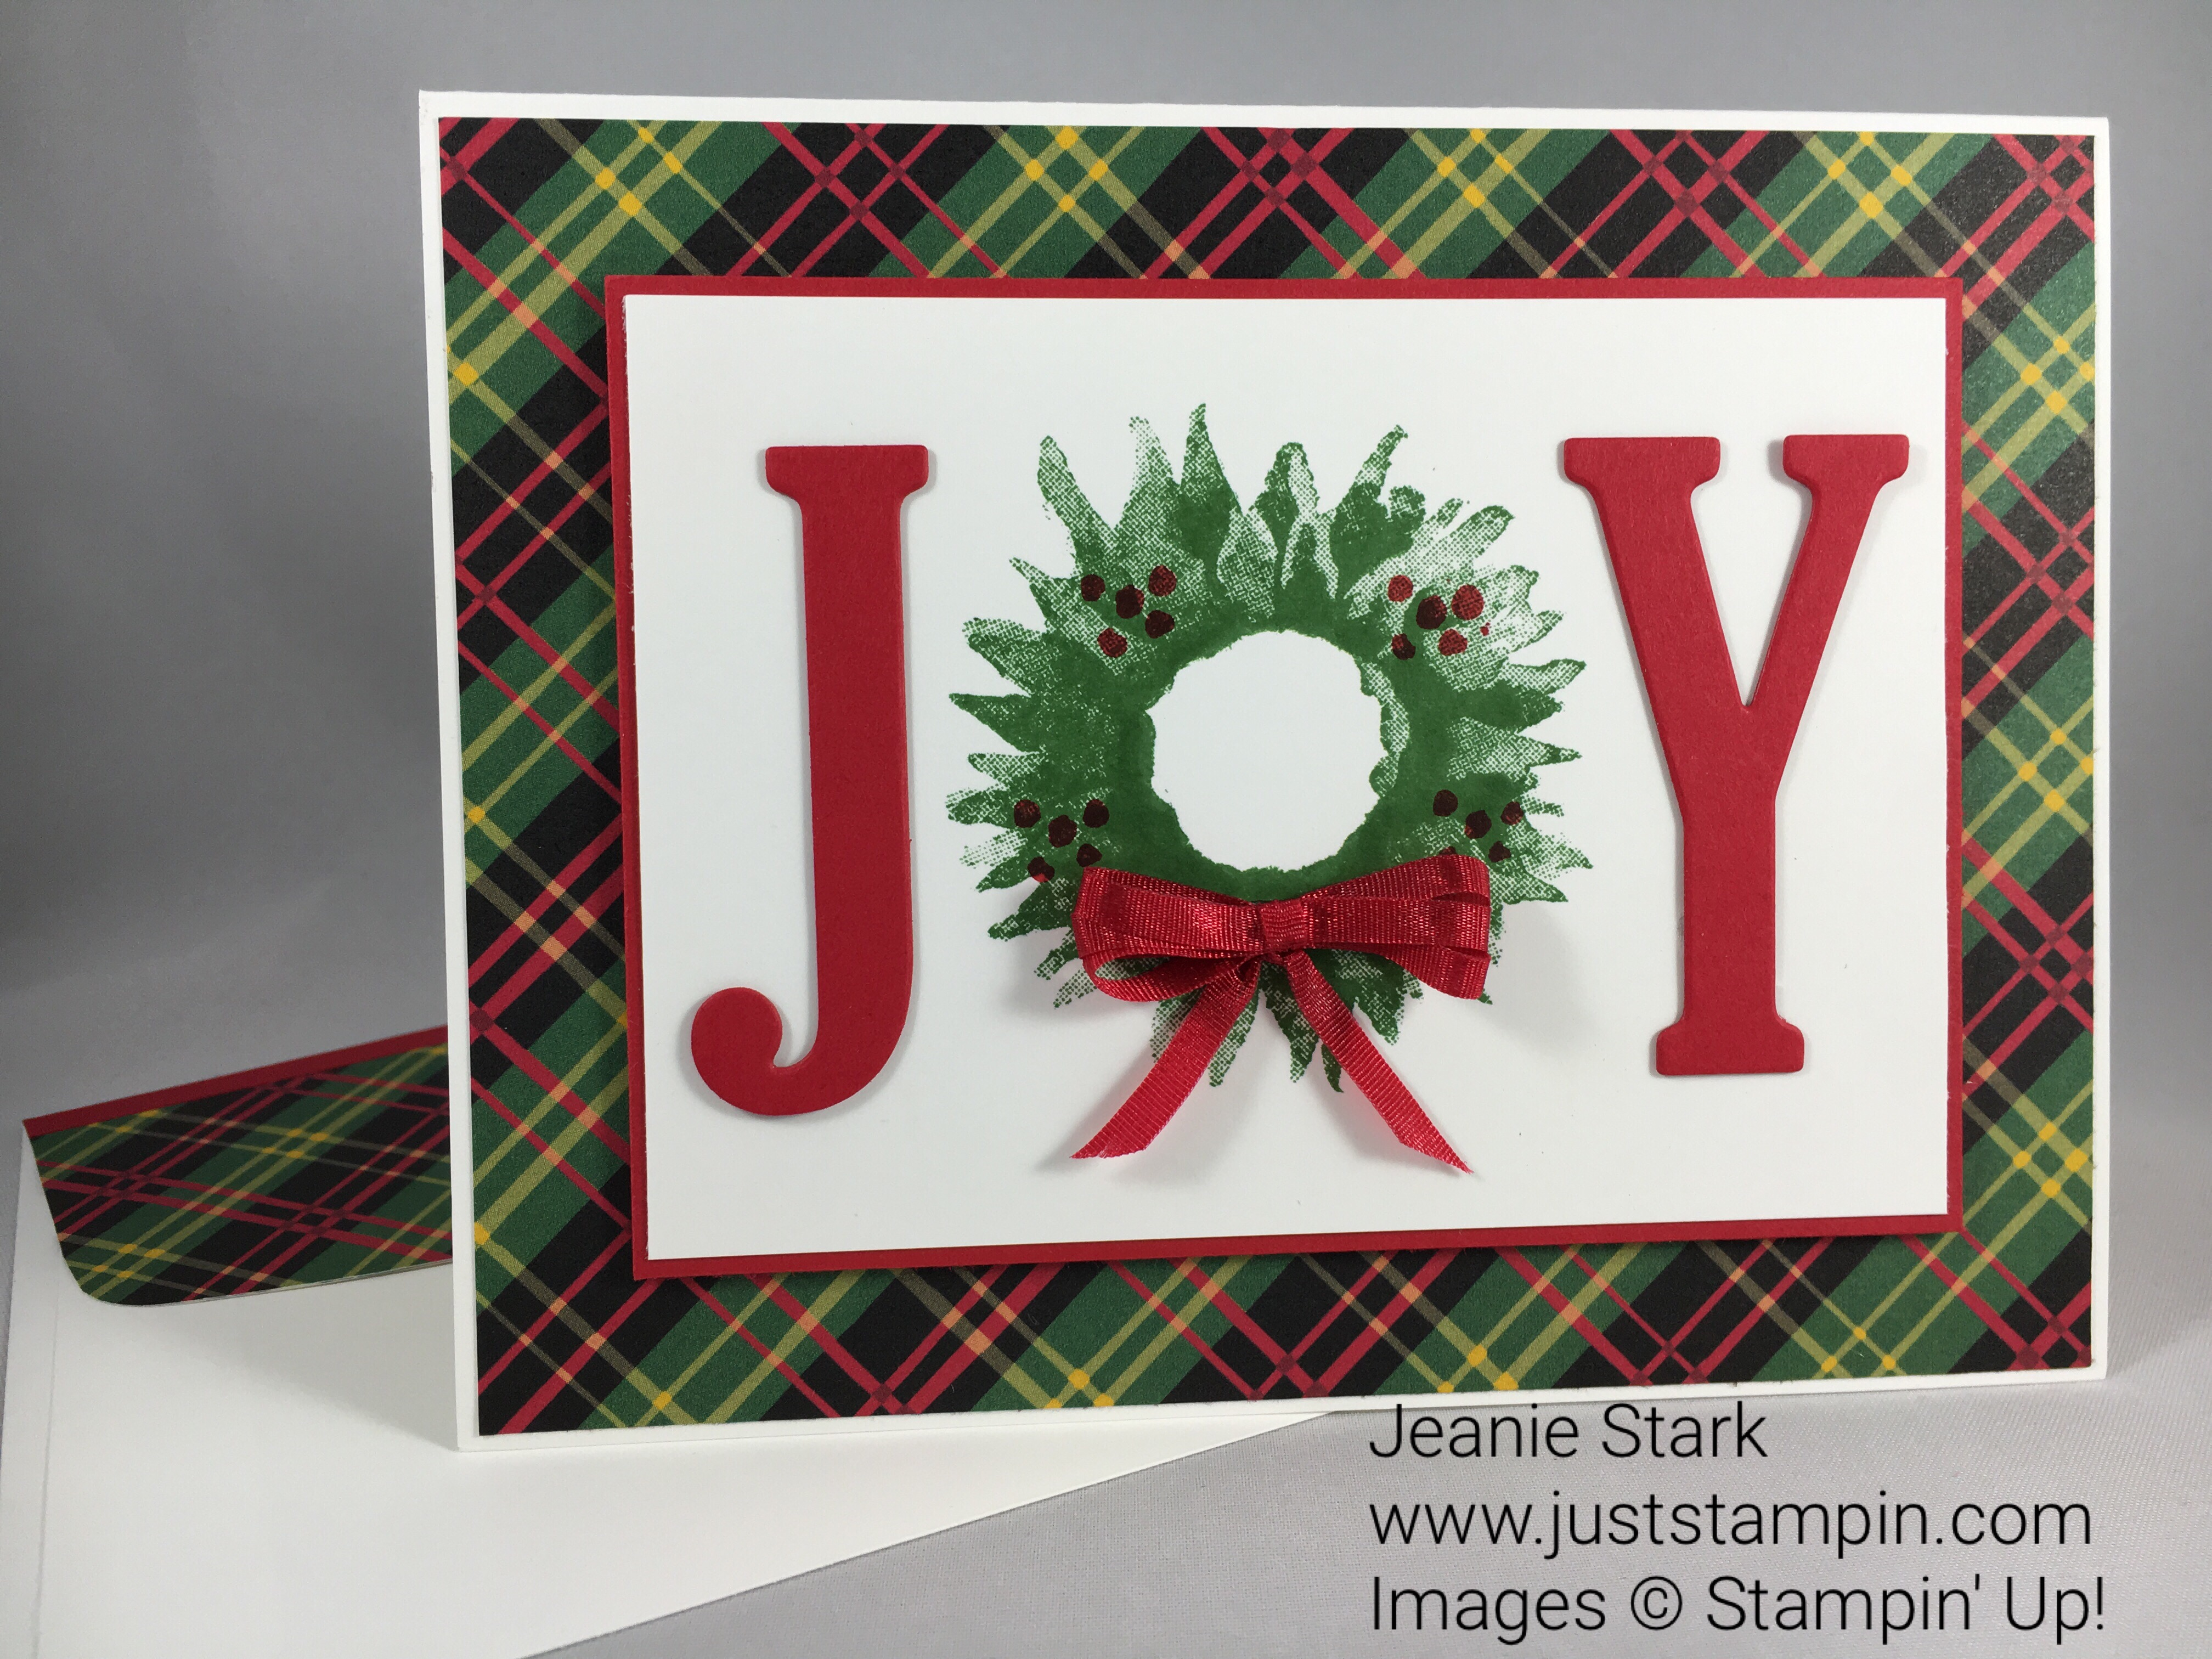 Stampin Up Painted Harvest Christmas card idea - Jeanie Stark StampinUp